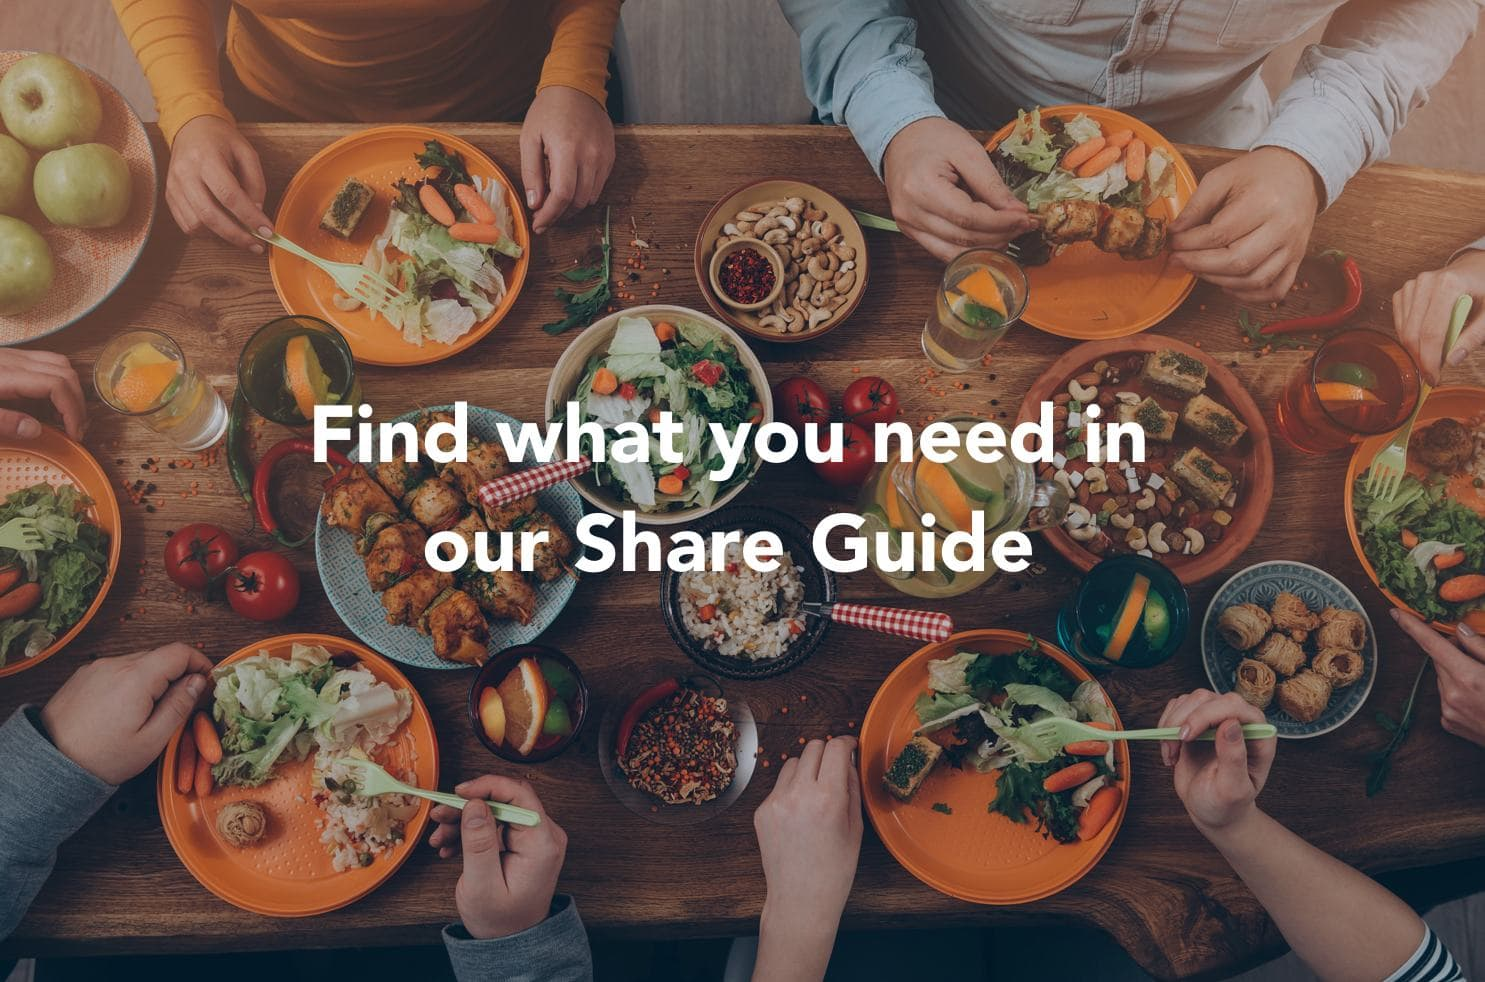 Share Guide